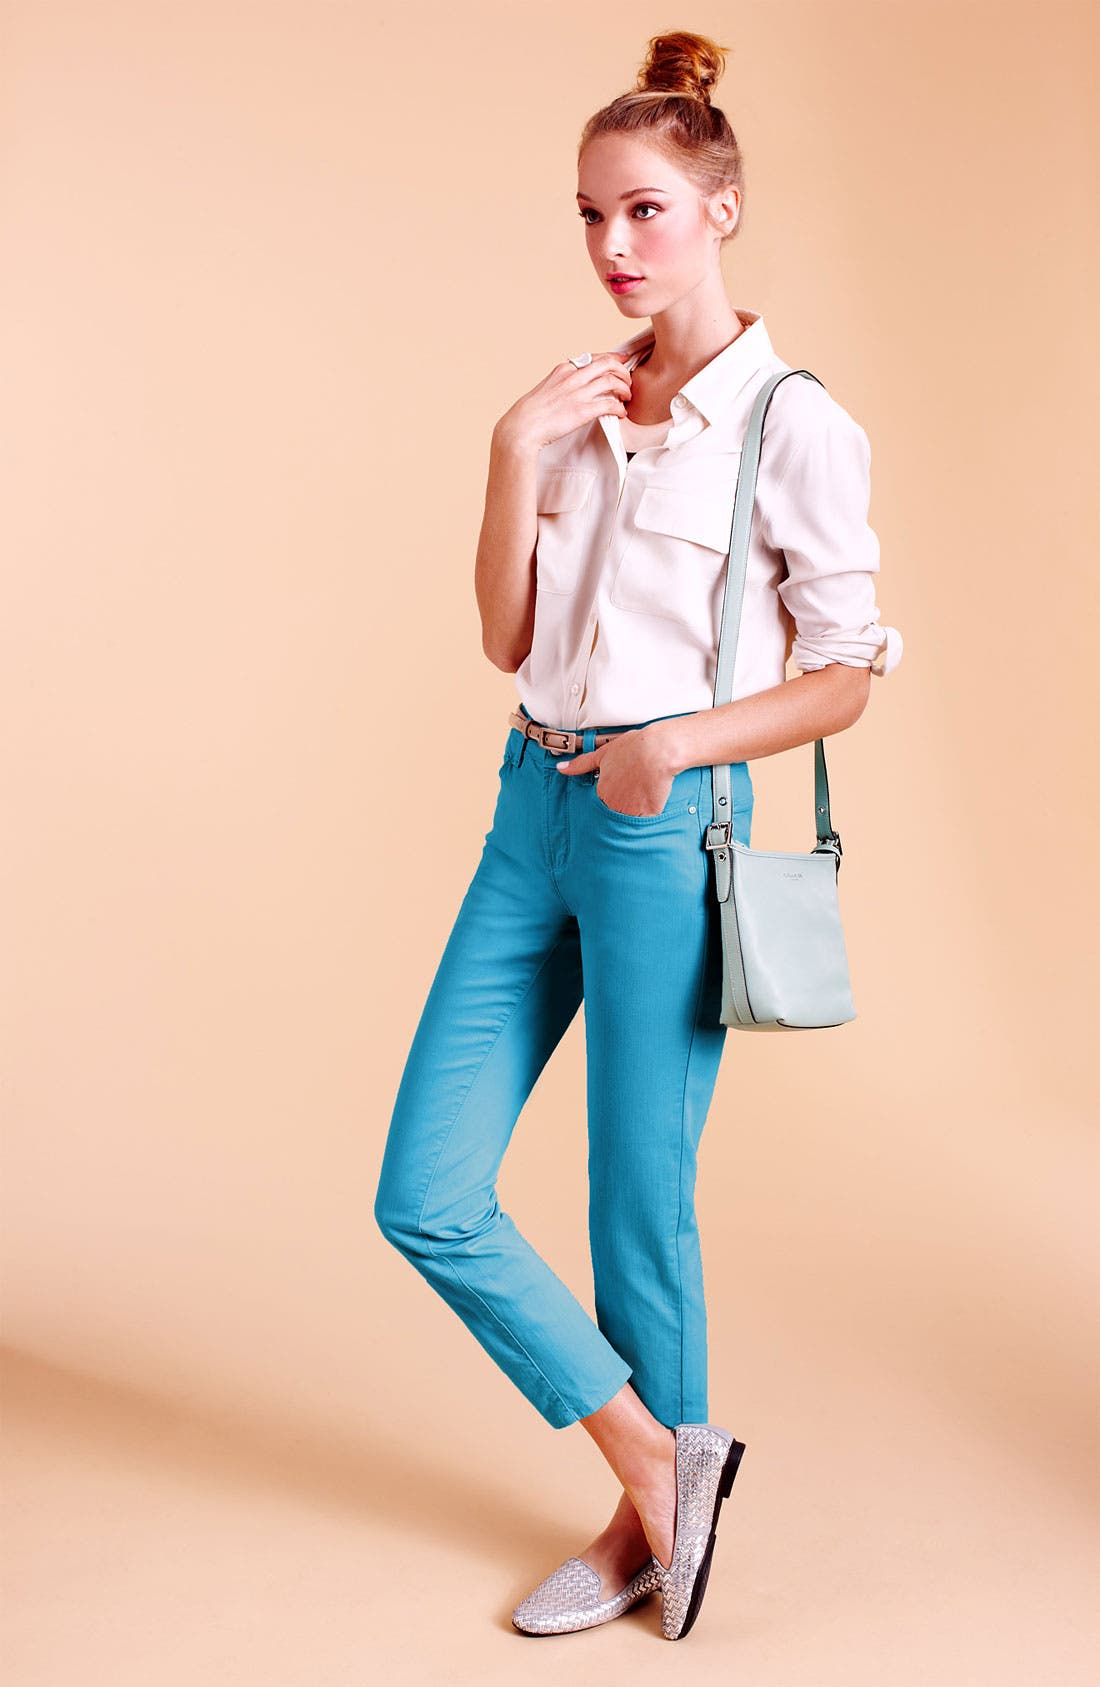 Alternate Image 1 Selected - Nexx Silk Shirt & NYDJ Ankle Jeans